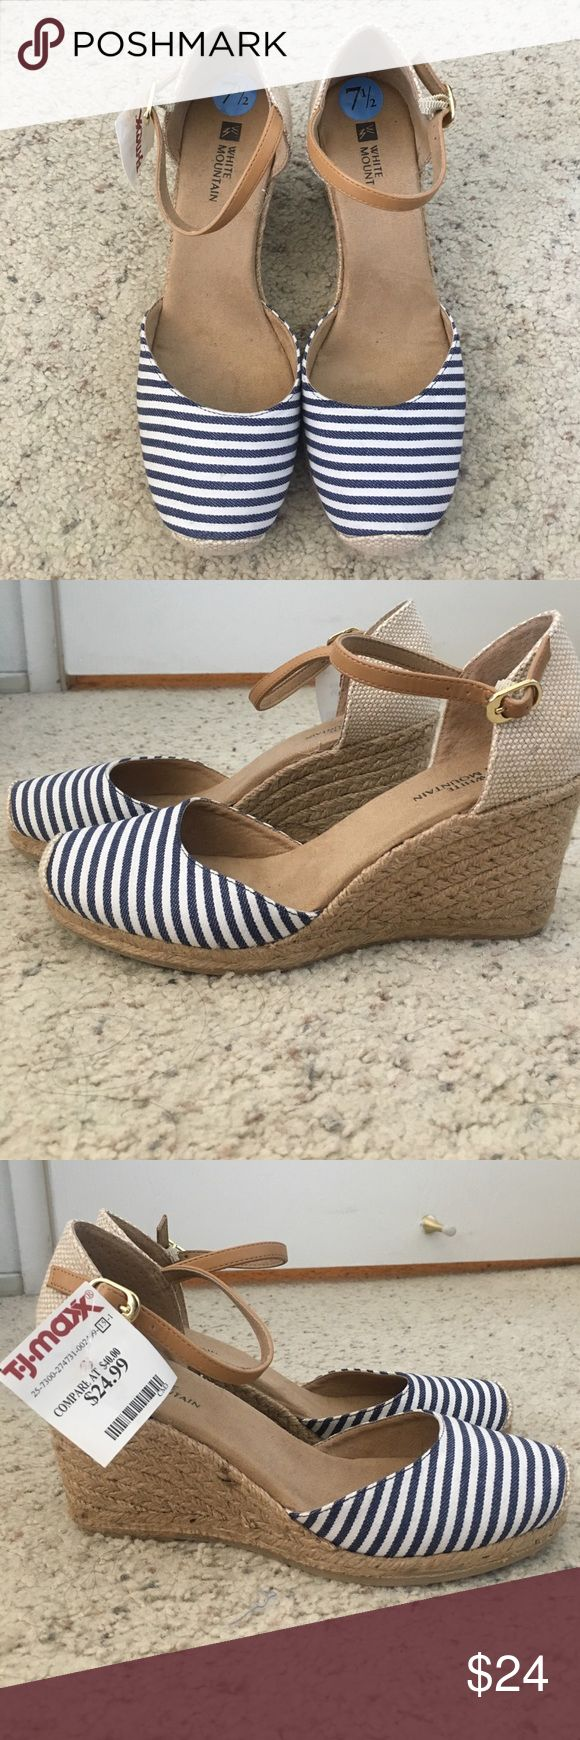 White Mountain Wedges w/ Tan Strap - Navy & White Brand New with tag still attached! Super cute navy blue and white wedges! Perfect height, not too high and very comfortable!! White Mountain Shoes Wedges